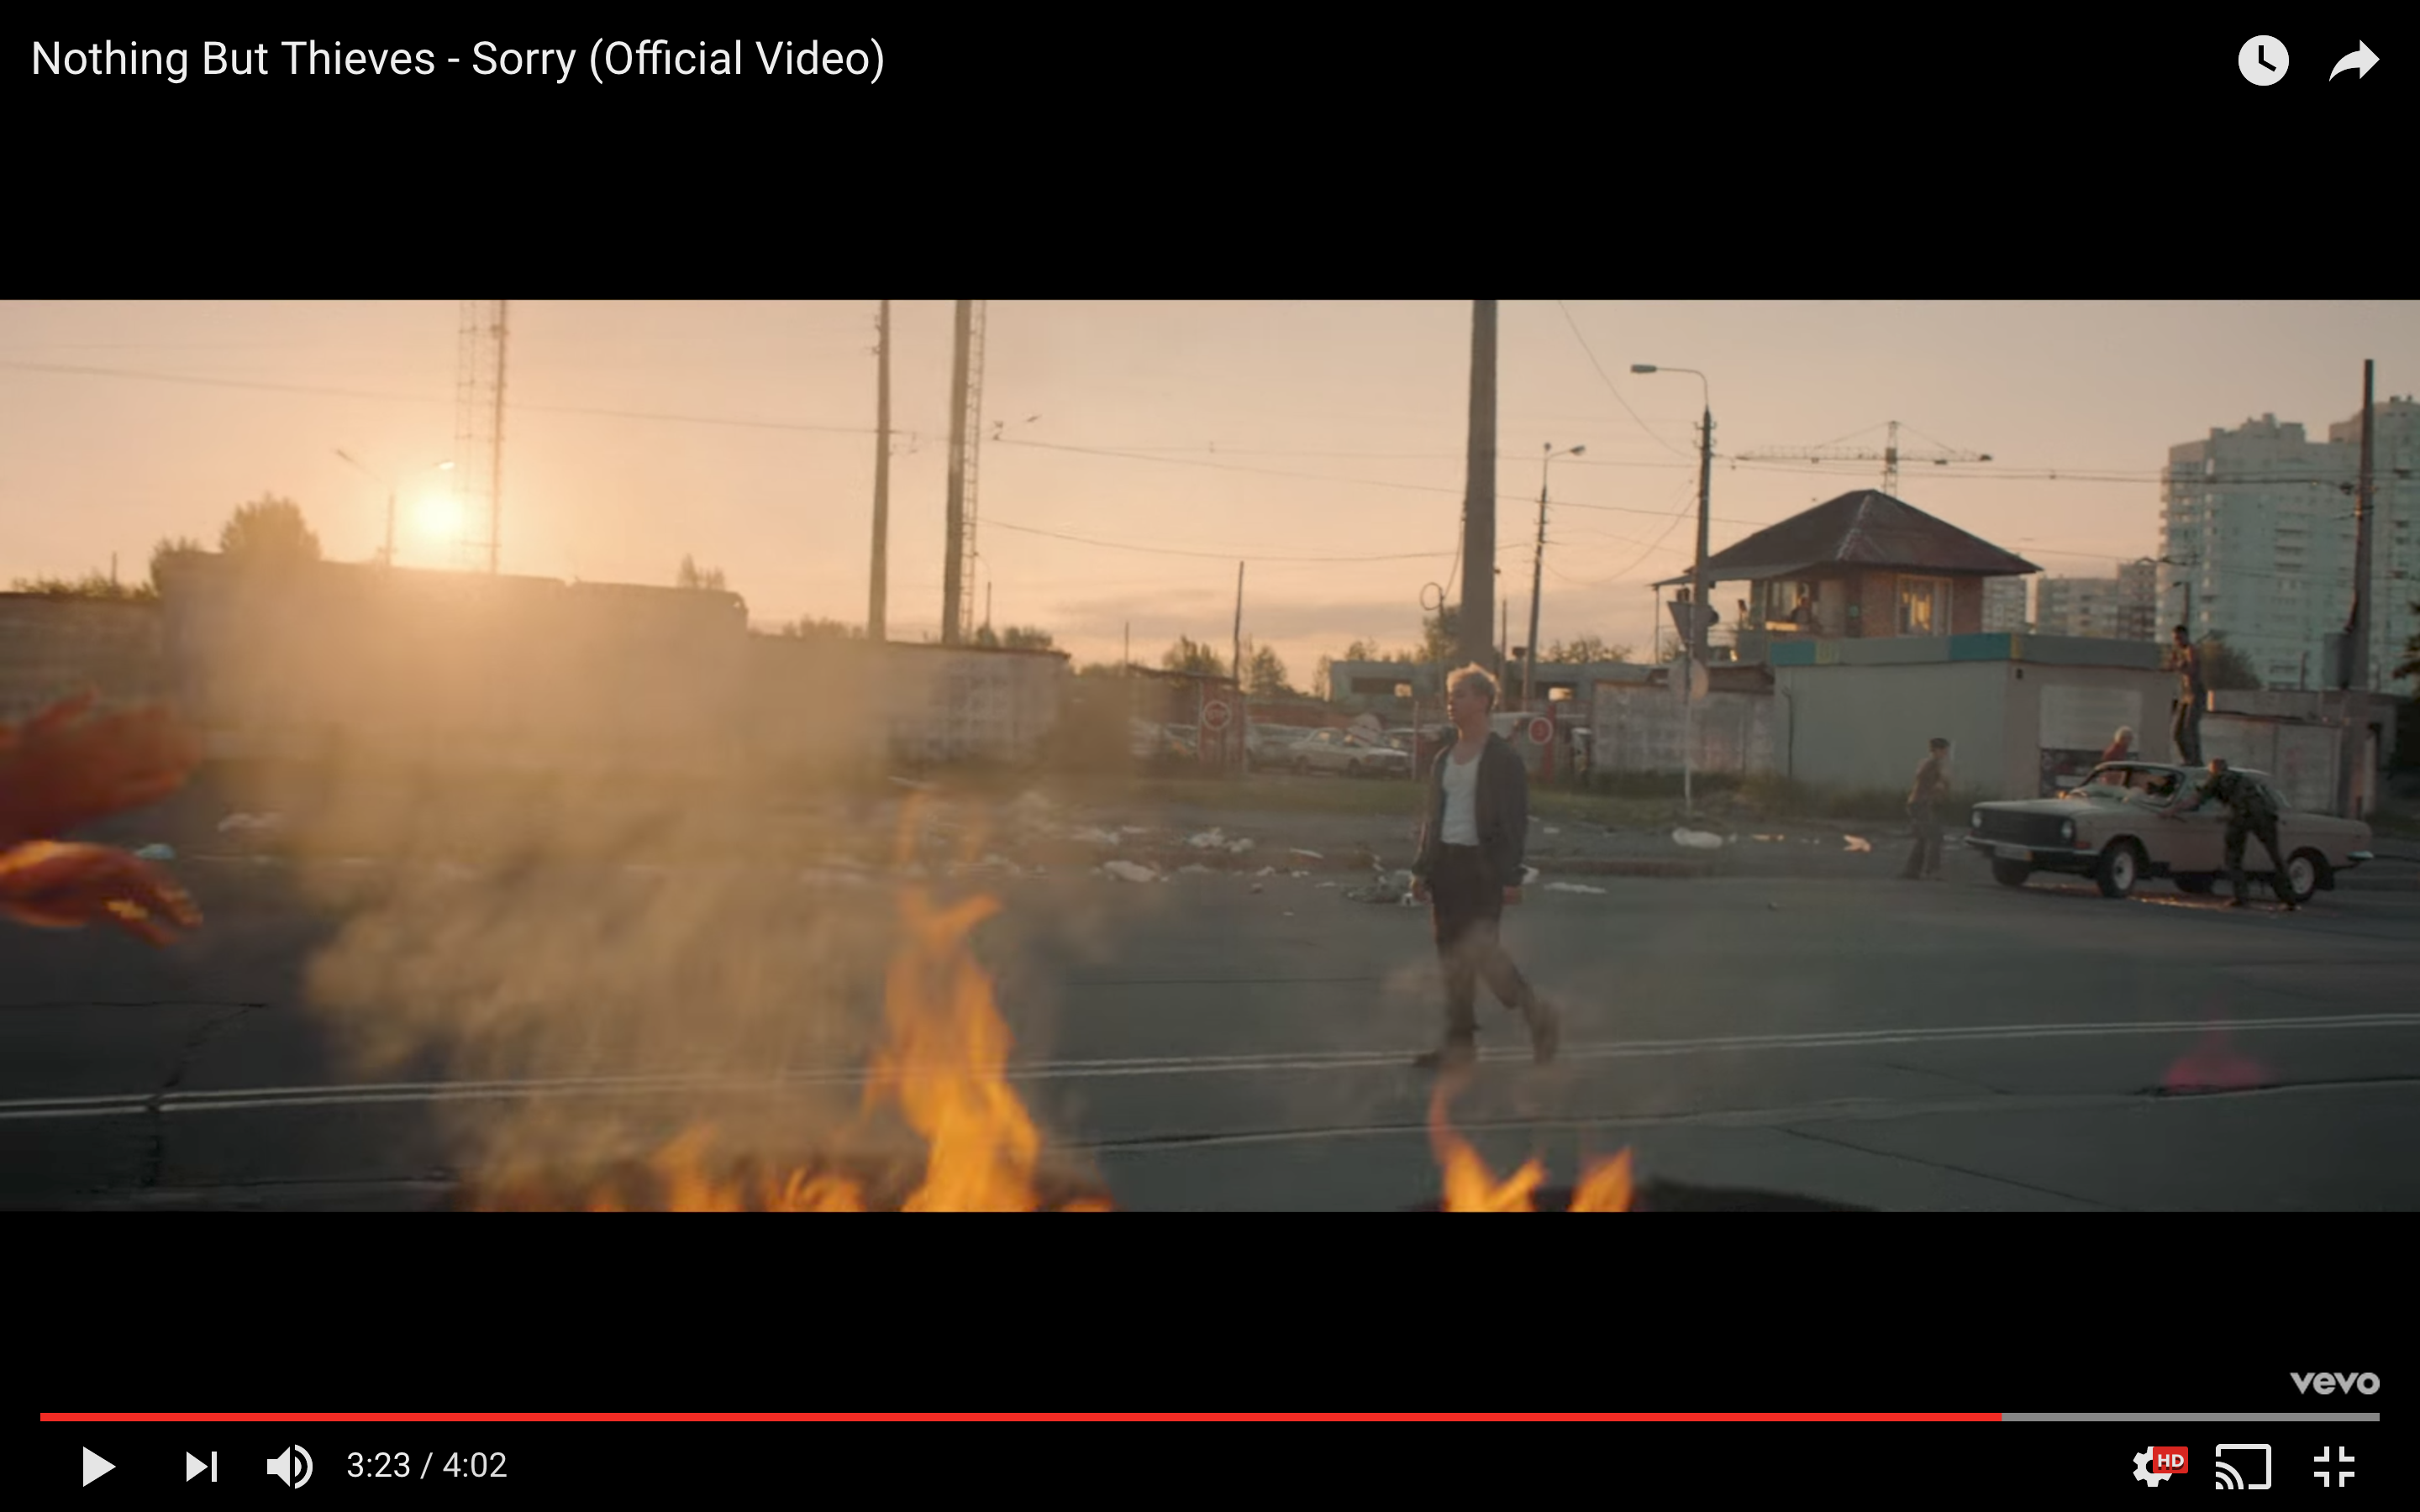 Nothing But Thieves' Video For 'Sorry' Just Landed... And It's Beautiful.